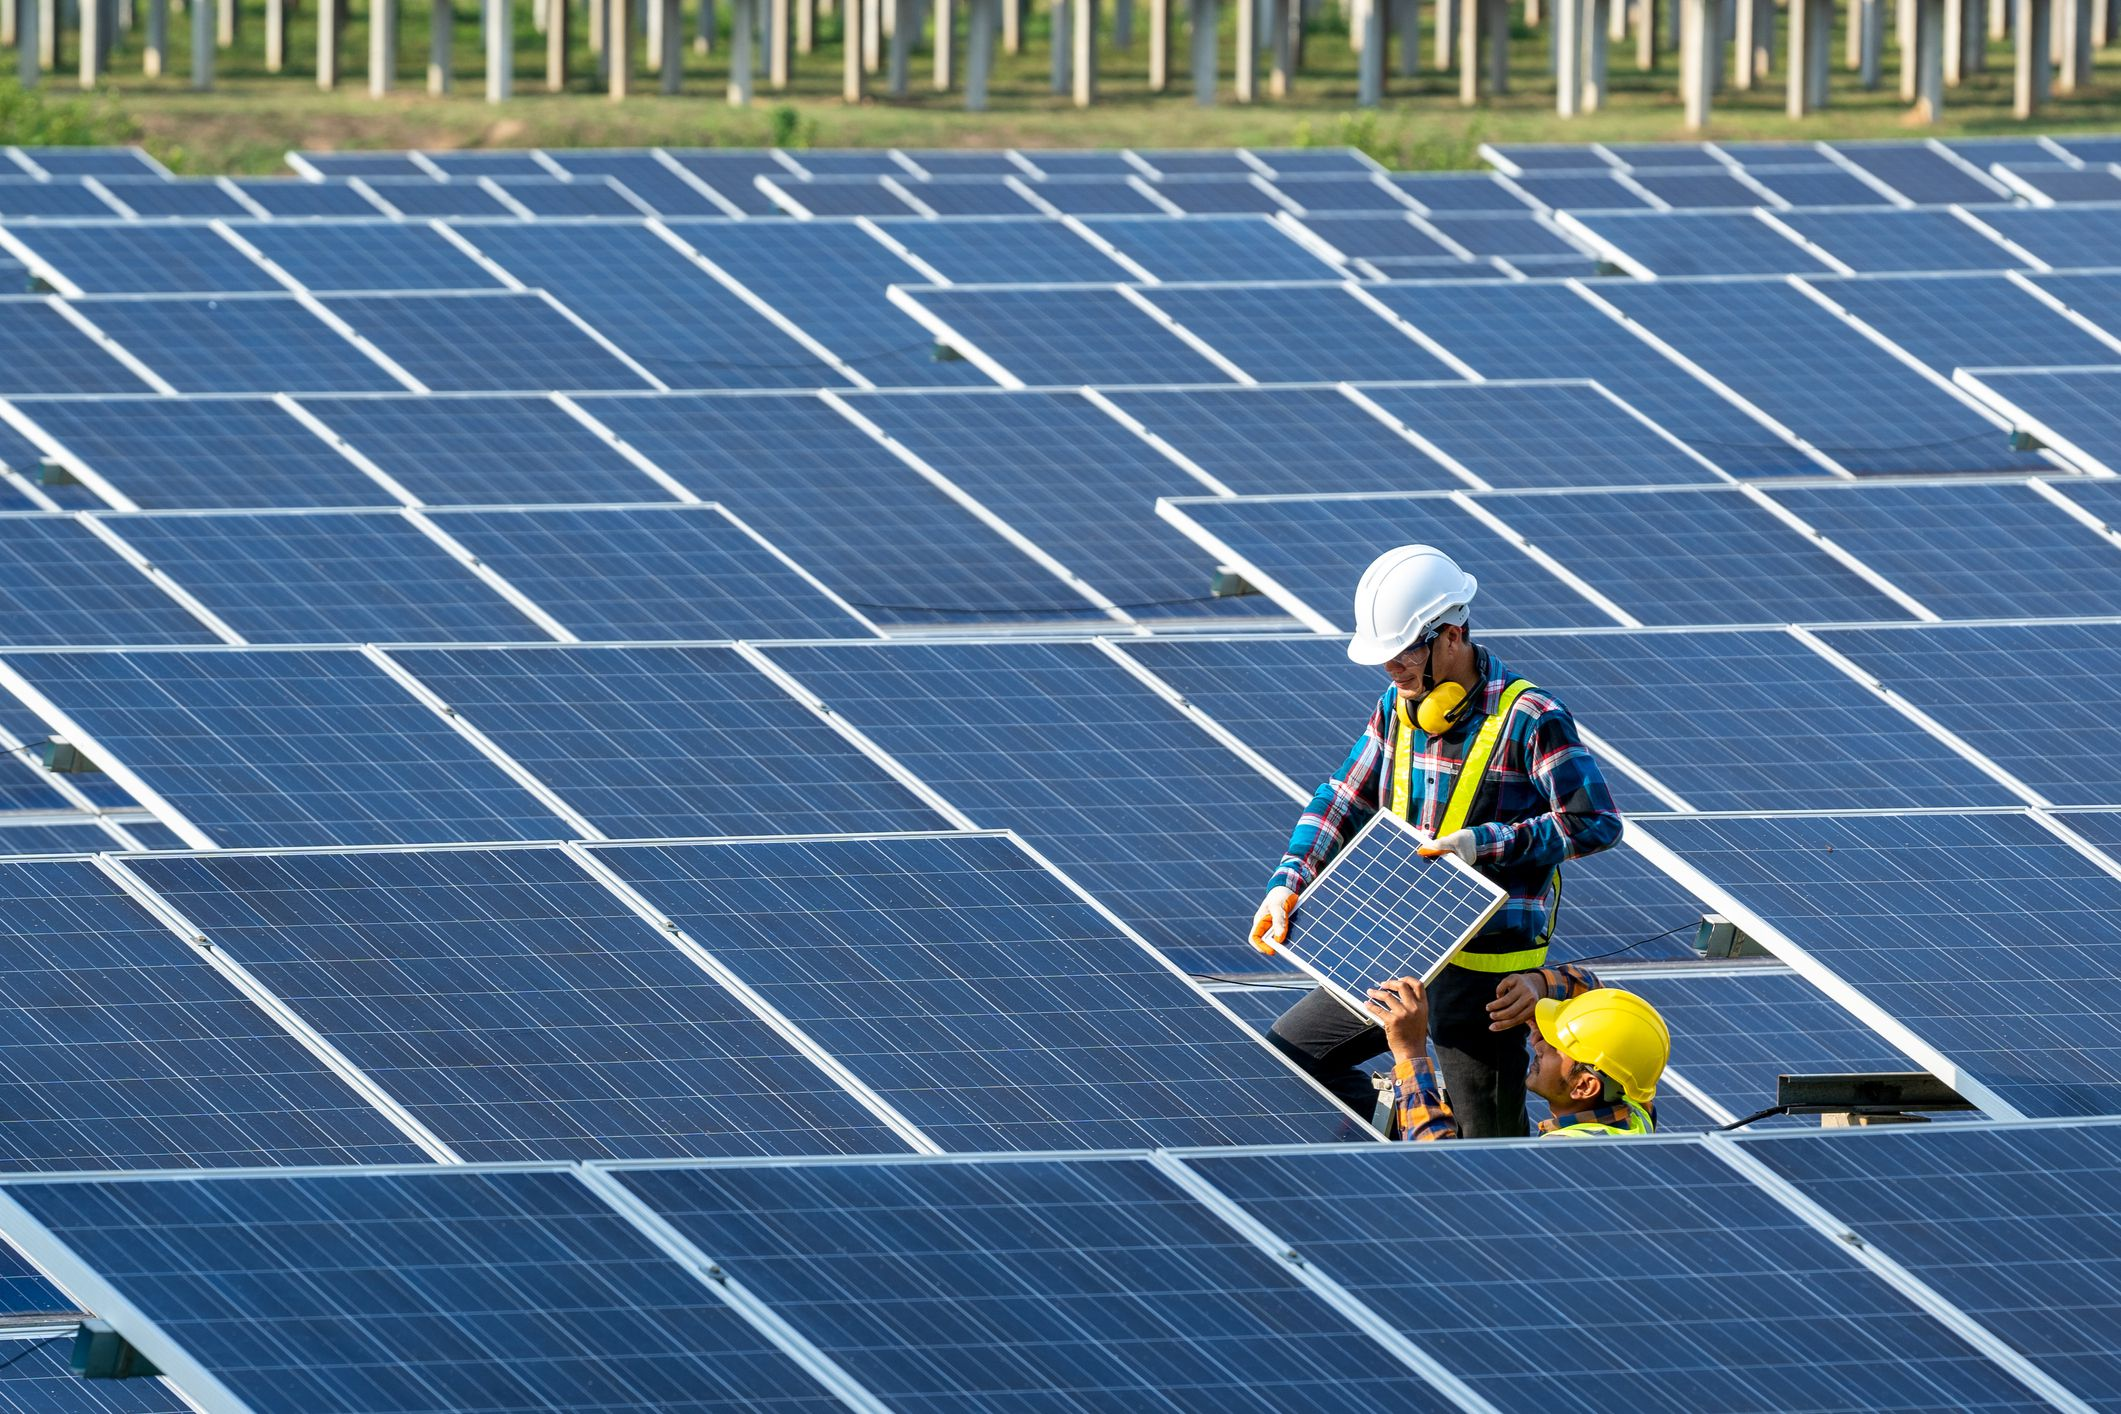 Thinking About Going Solar? 5 Questions To Ask For The Right Installer